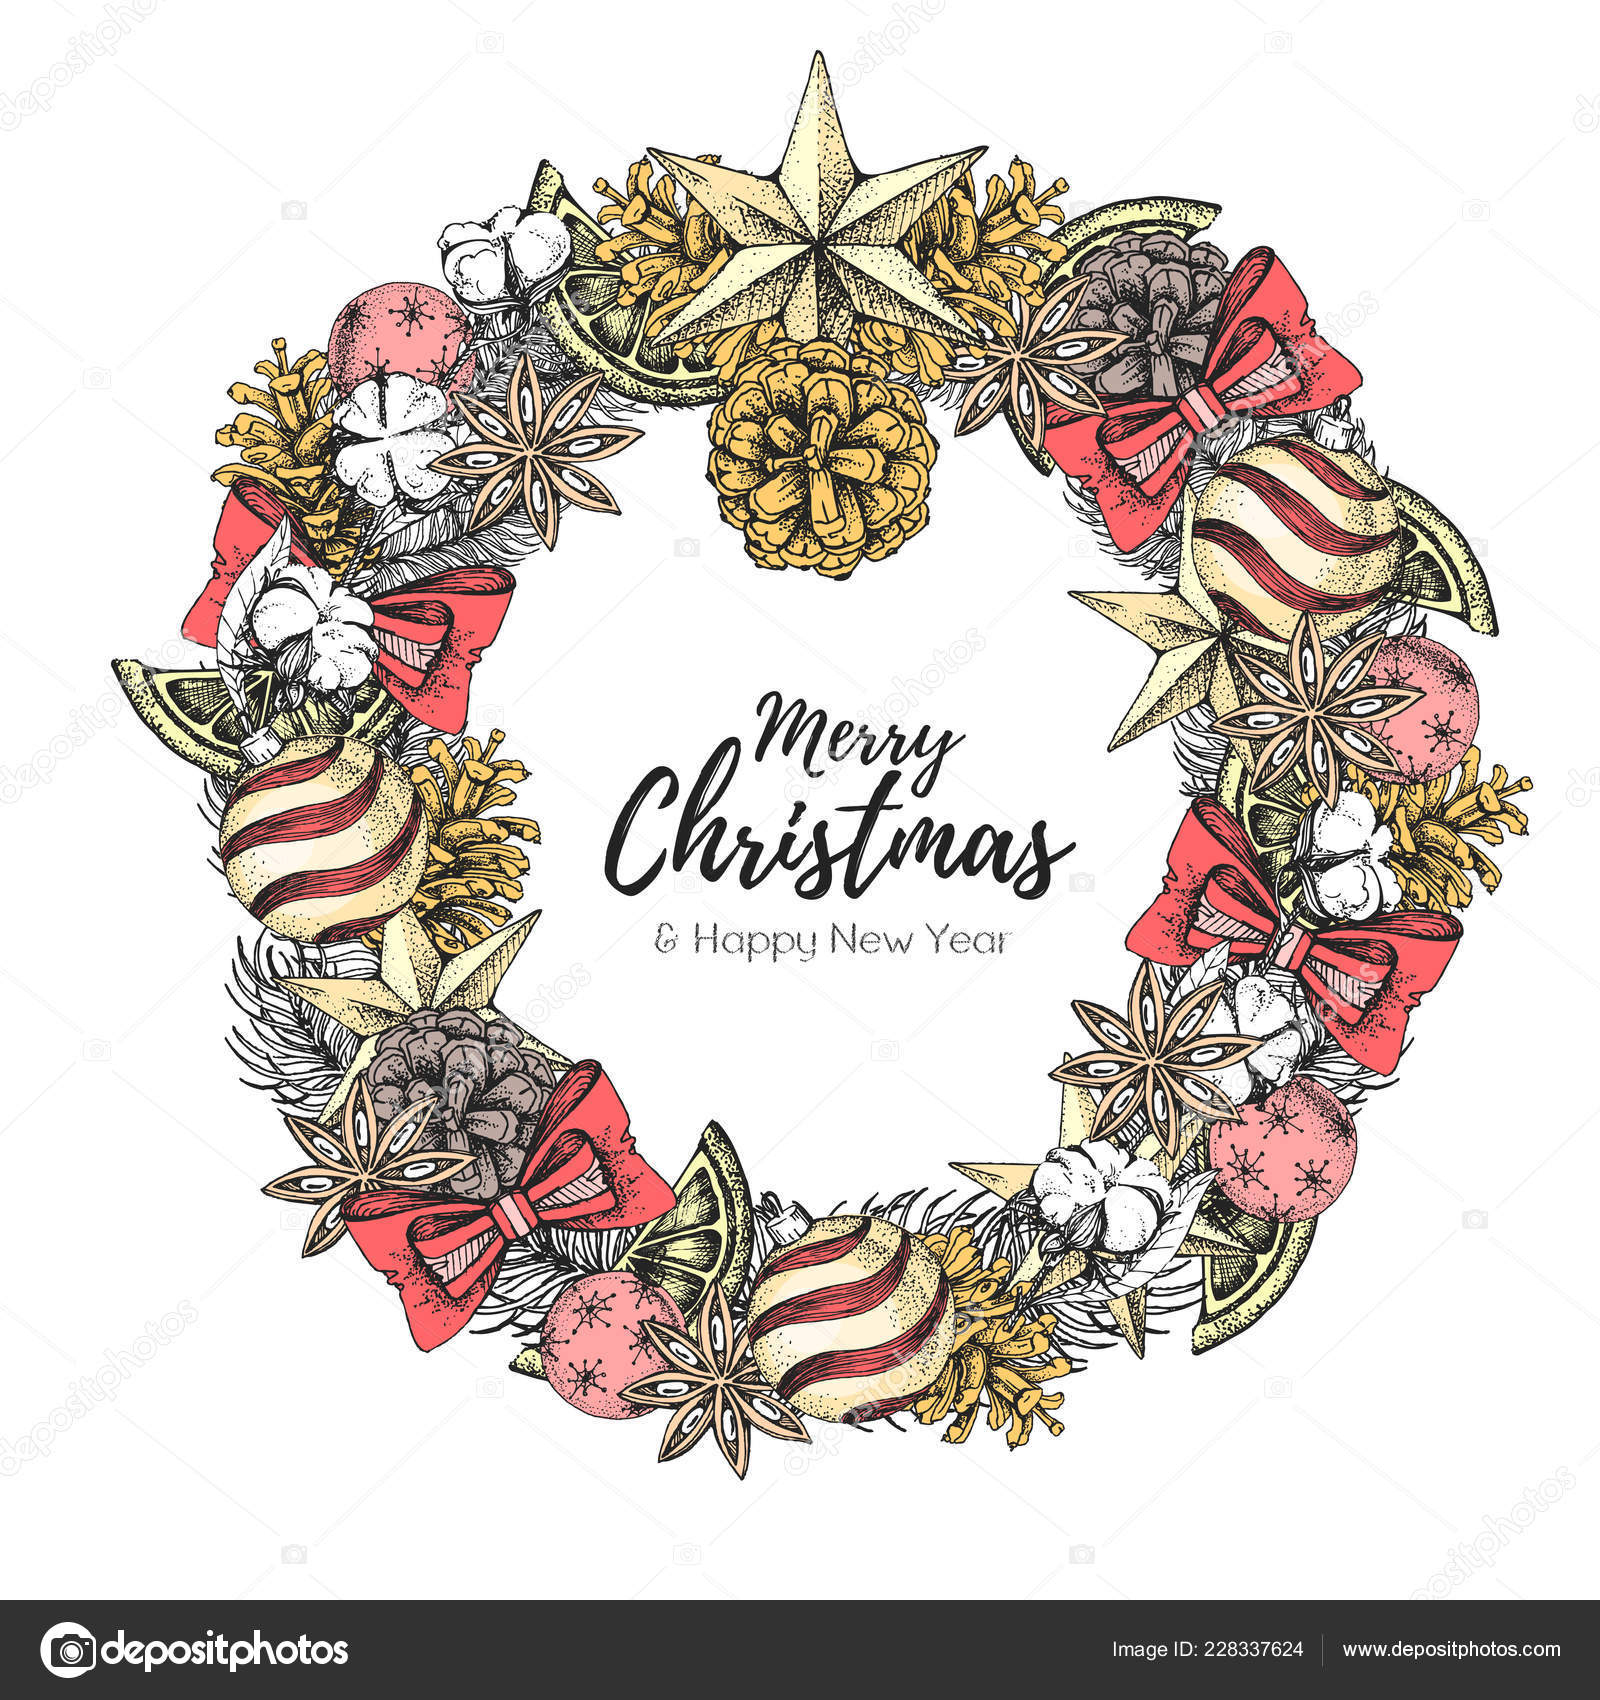 Christmas Concept Design Christmas Holiday Decorative Wreath Hand Drawing Vector Illustration Vector Image By C Annbozshko Vector Stock 228337624